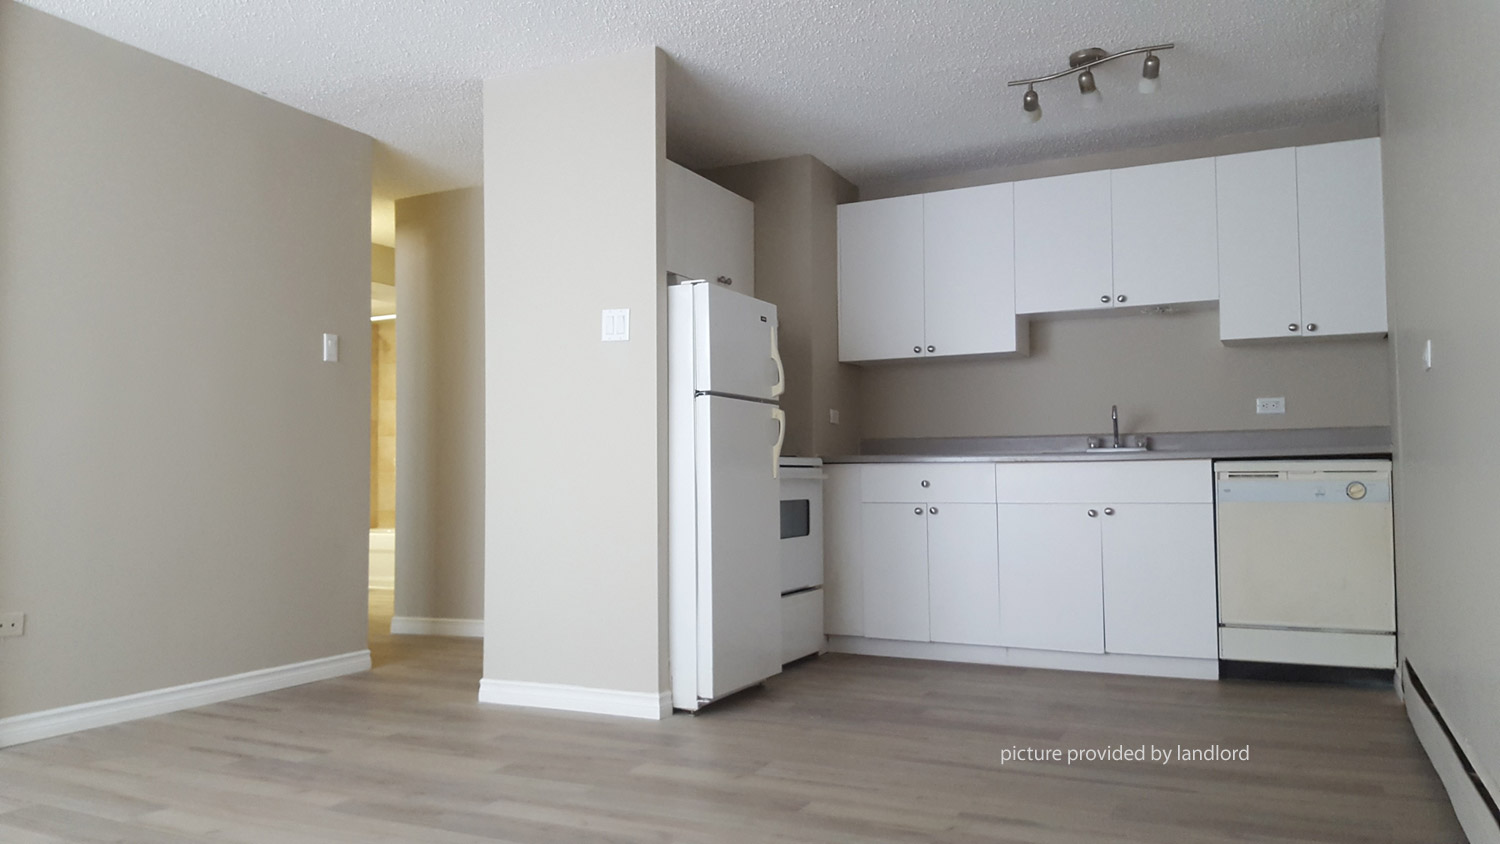 17 AVE SW-4 ST SW, Calgary, AB : Bachelor for rent ...